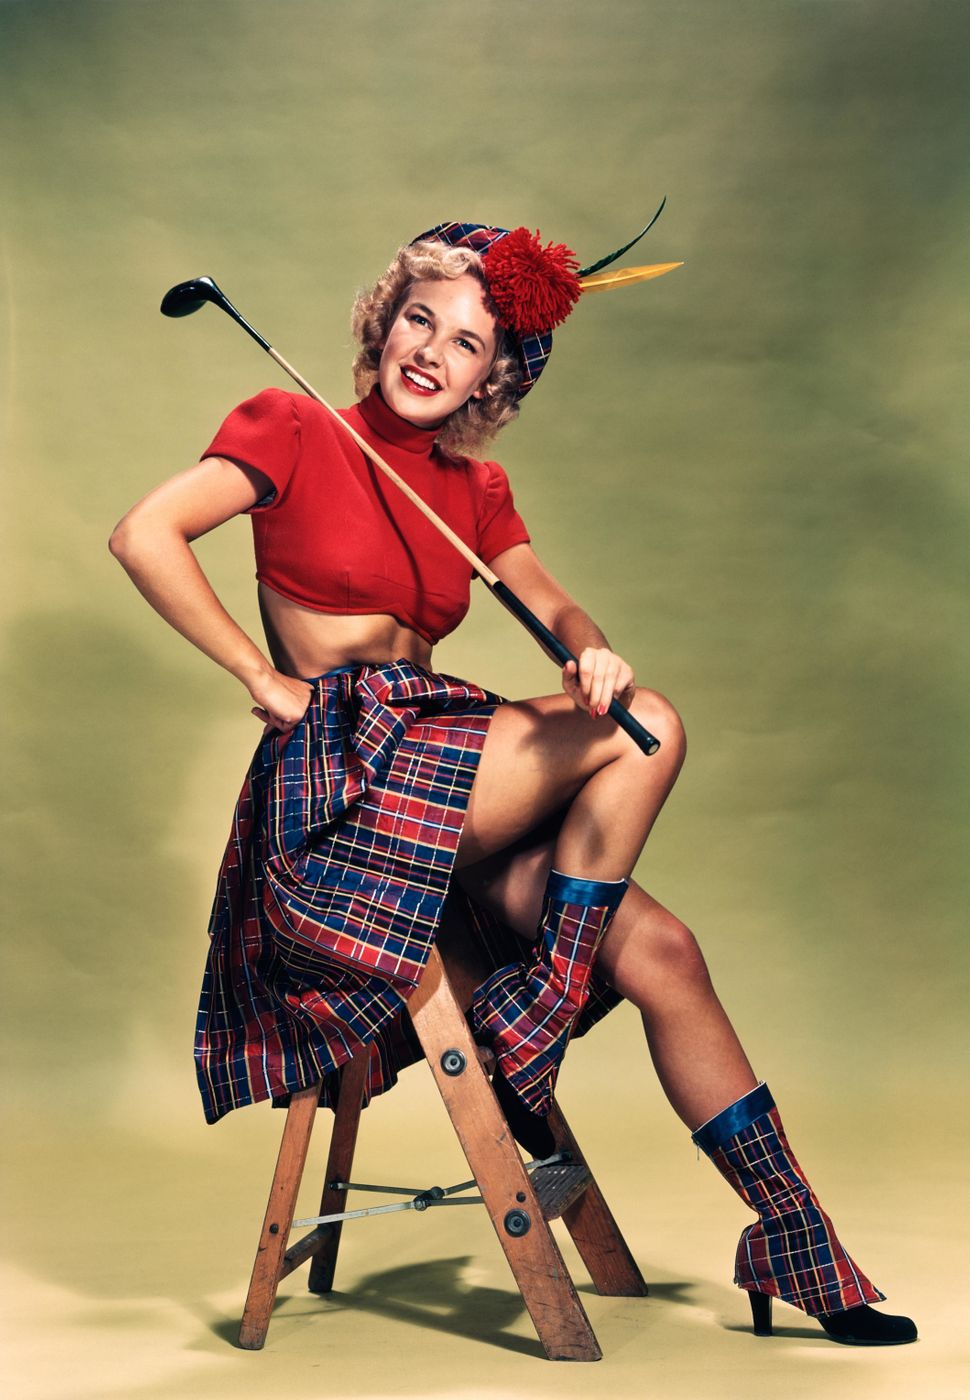 A 1949 pin-up portrait of a smiling blond woman wearing a red cropped sweater and plaid skirt whileholding a golf club.